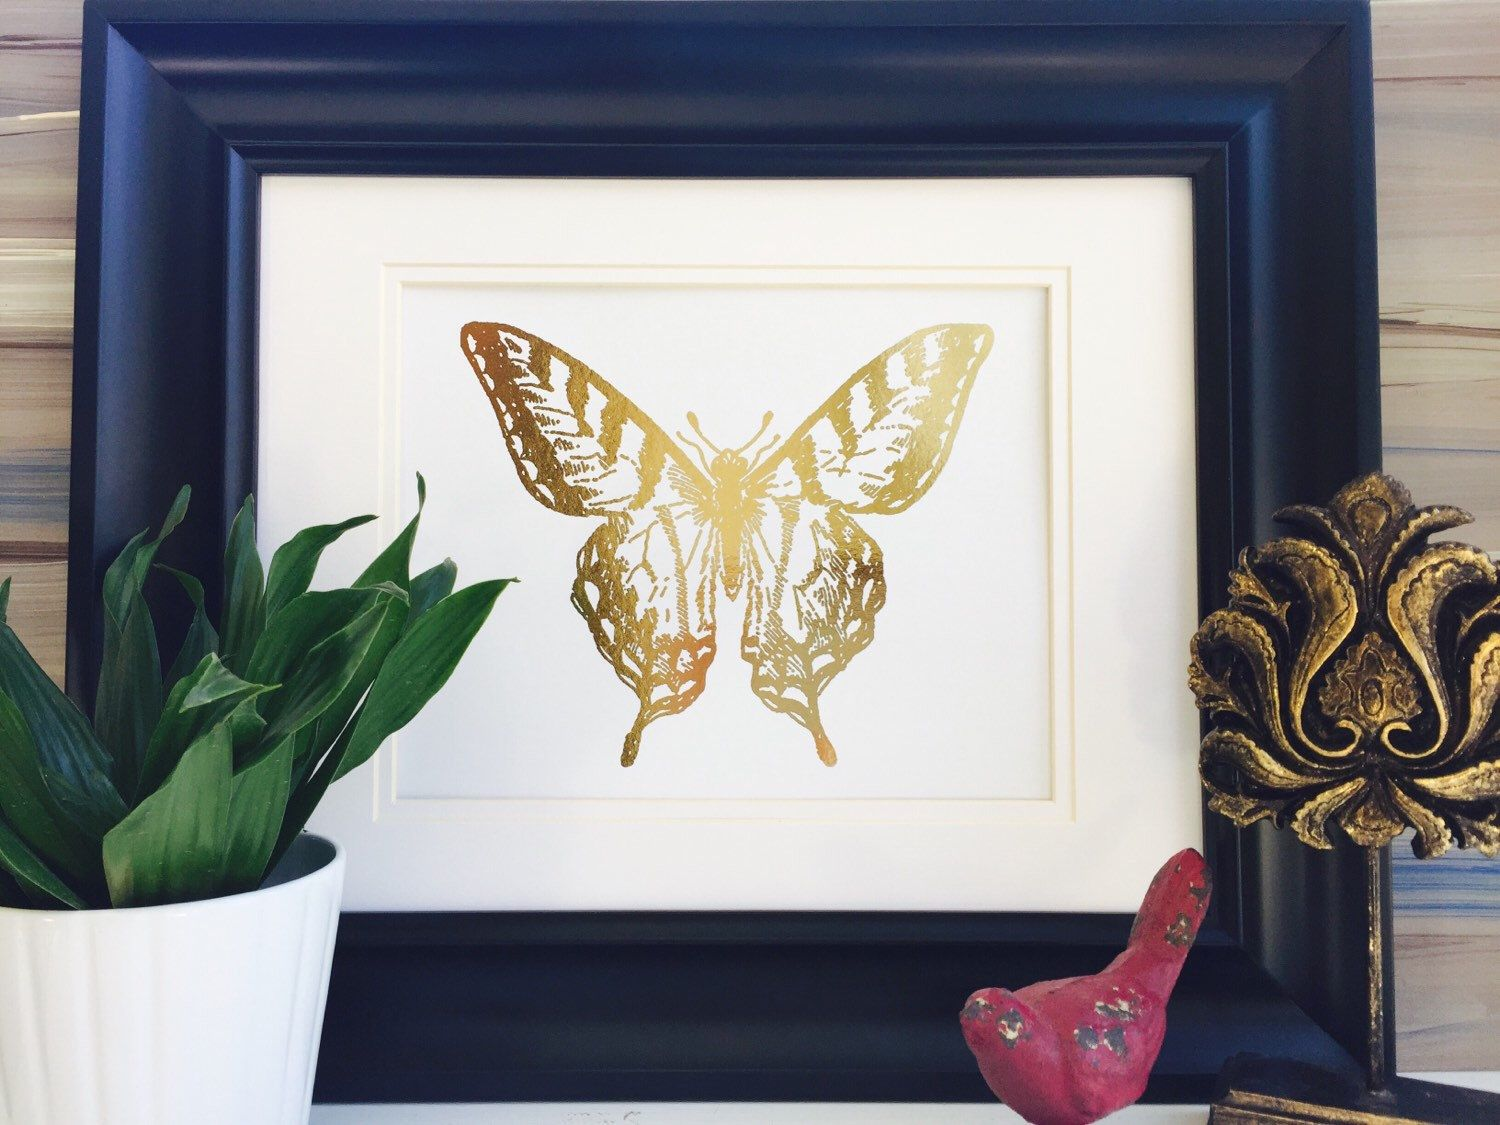 Butterfly Wall Decor Gold Foil Print Gold by FoiledAgainPrints & Pin by Amie Binkley on Emeryu0027s room | Pinterest | Butterfly wall ...